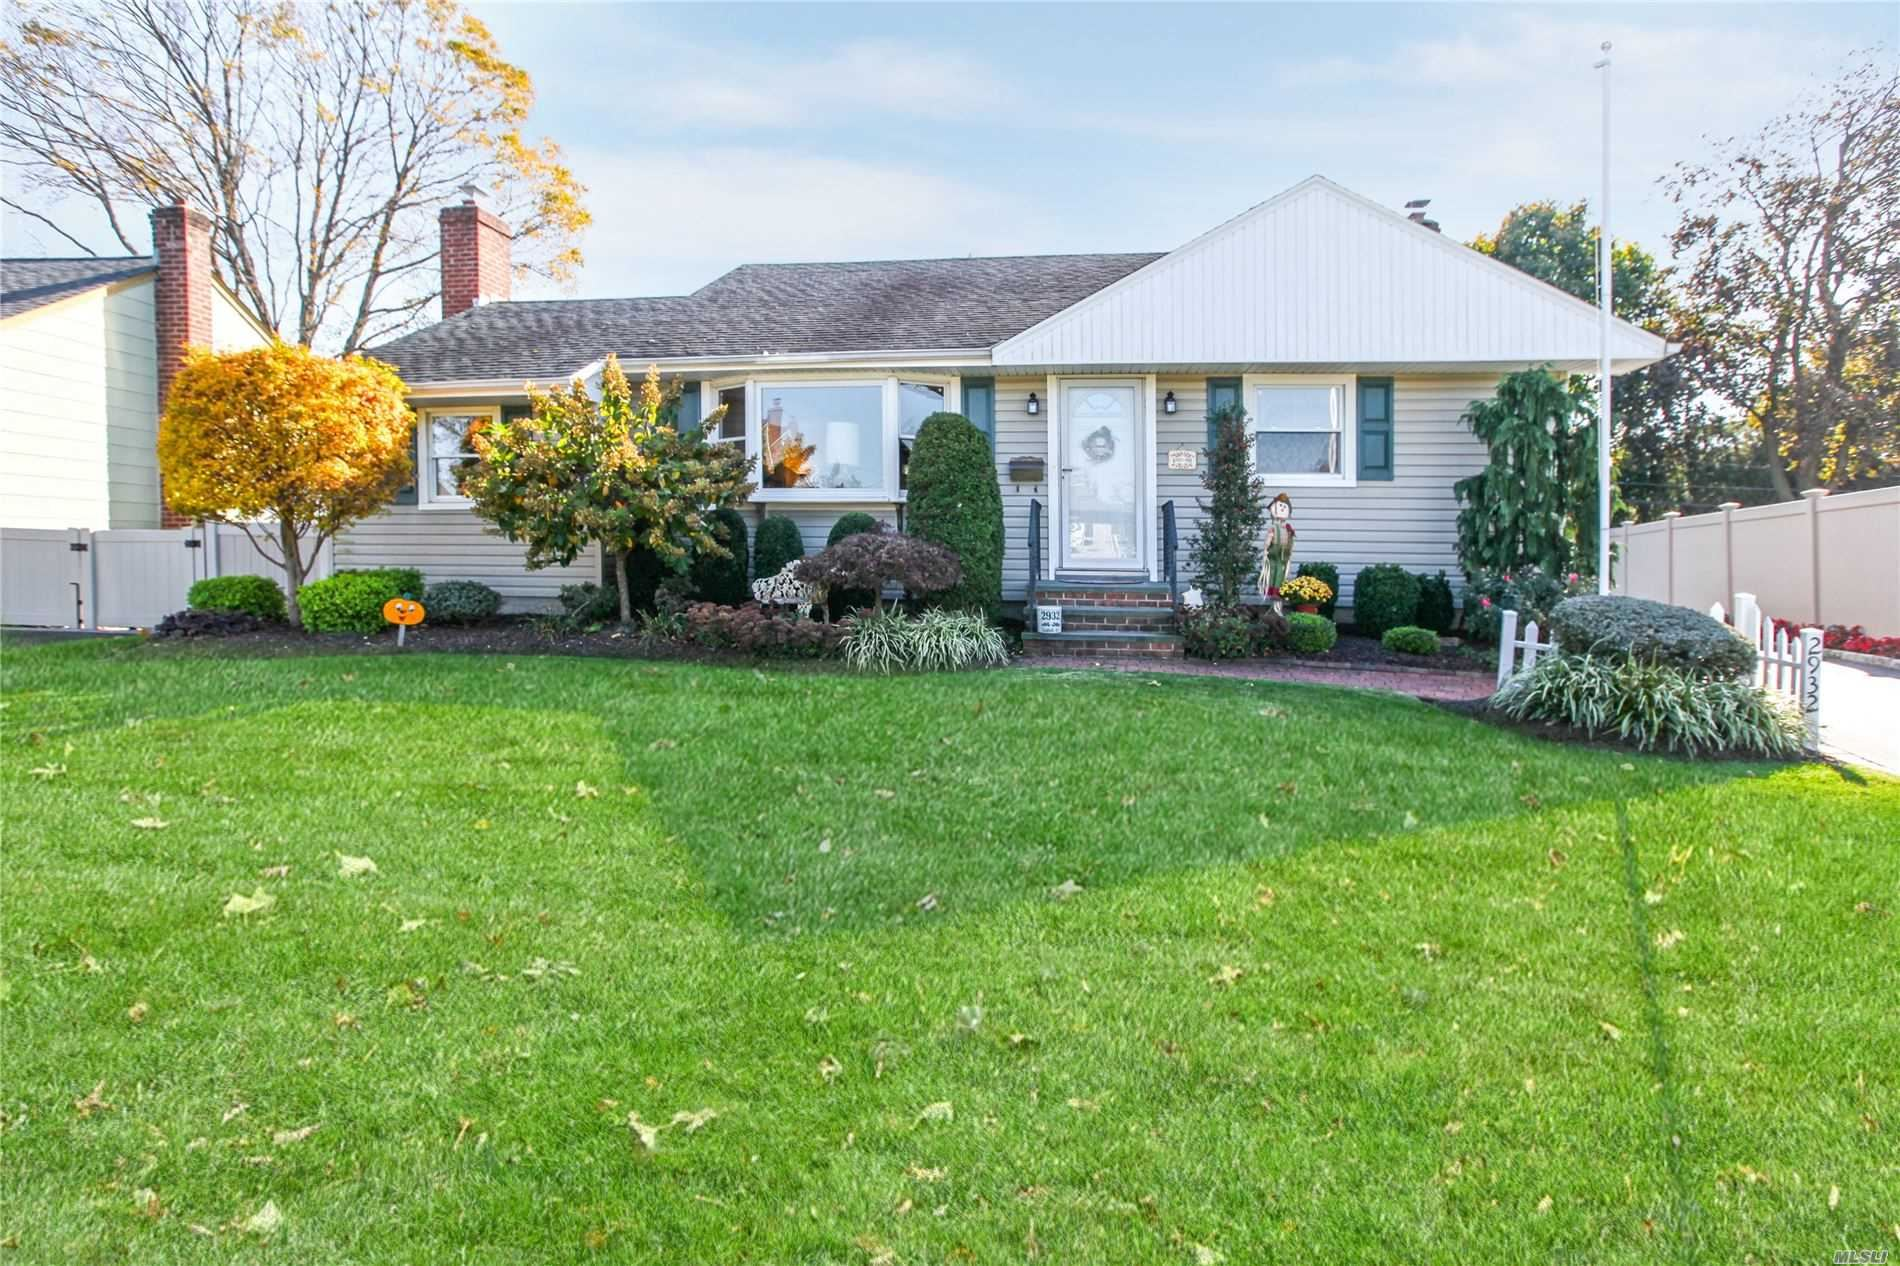 2932 Lindale Street, Wantagh, NY 11793 - MLS#: 3178074